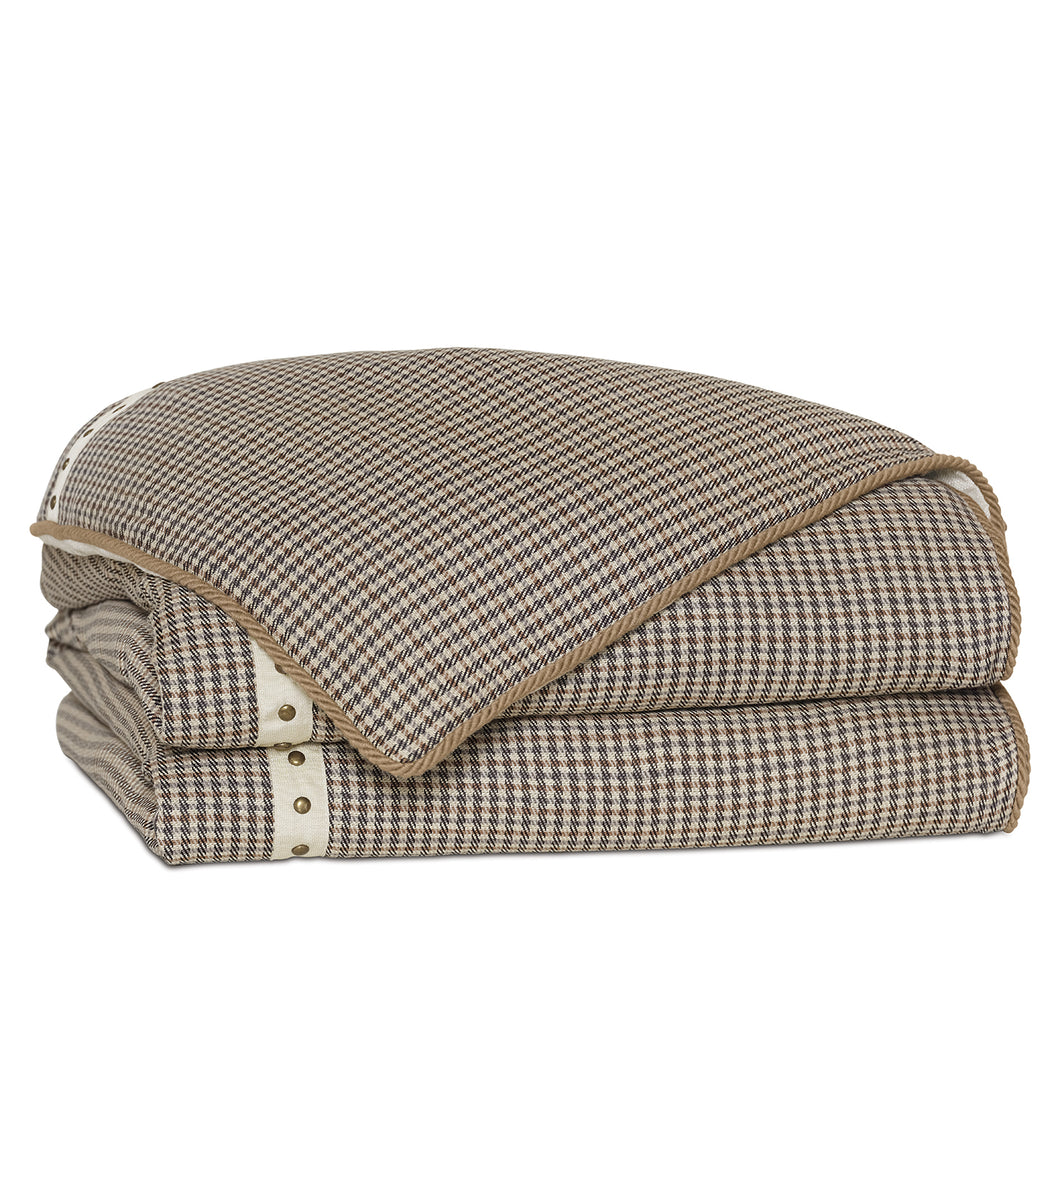 Aiden Houndstooth Nailhead Duvet Cover in Beige